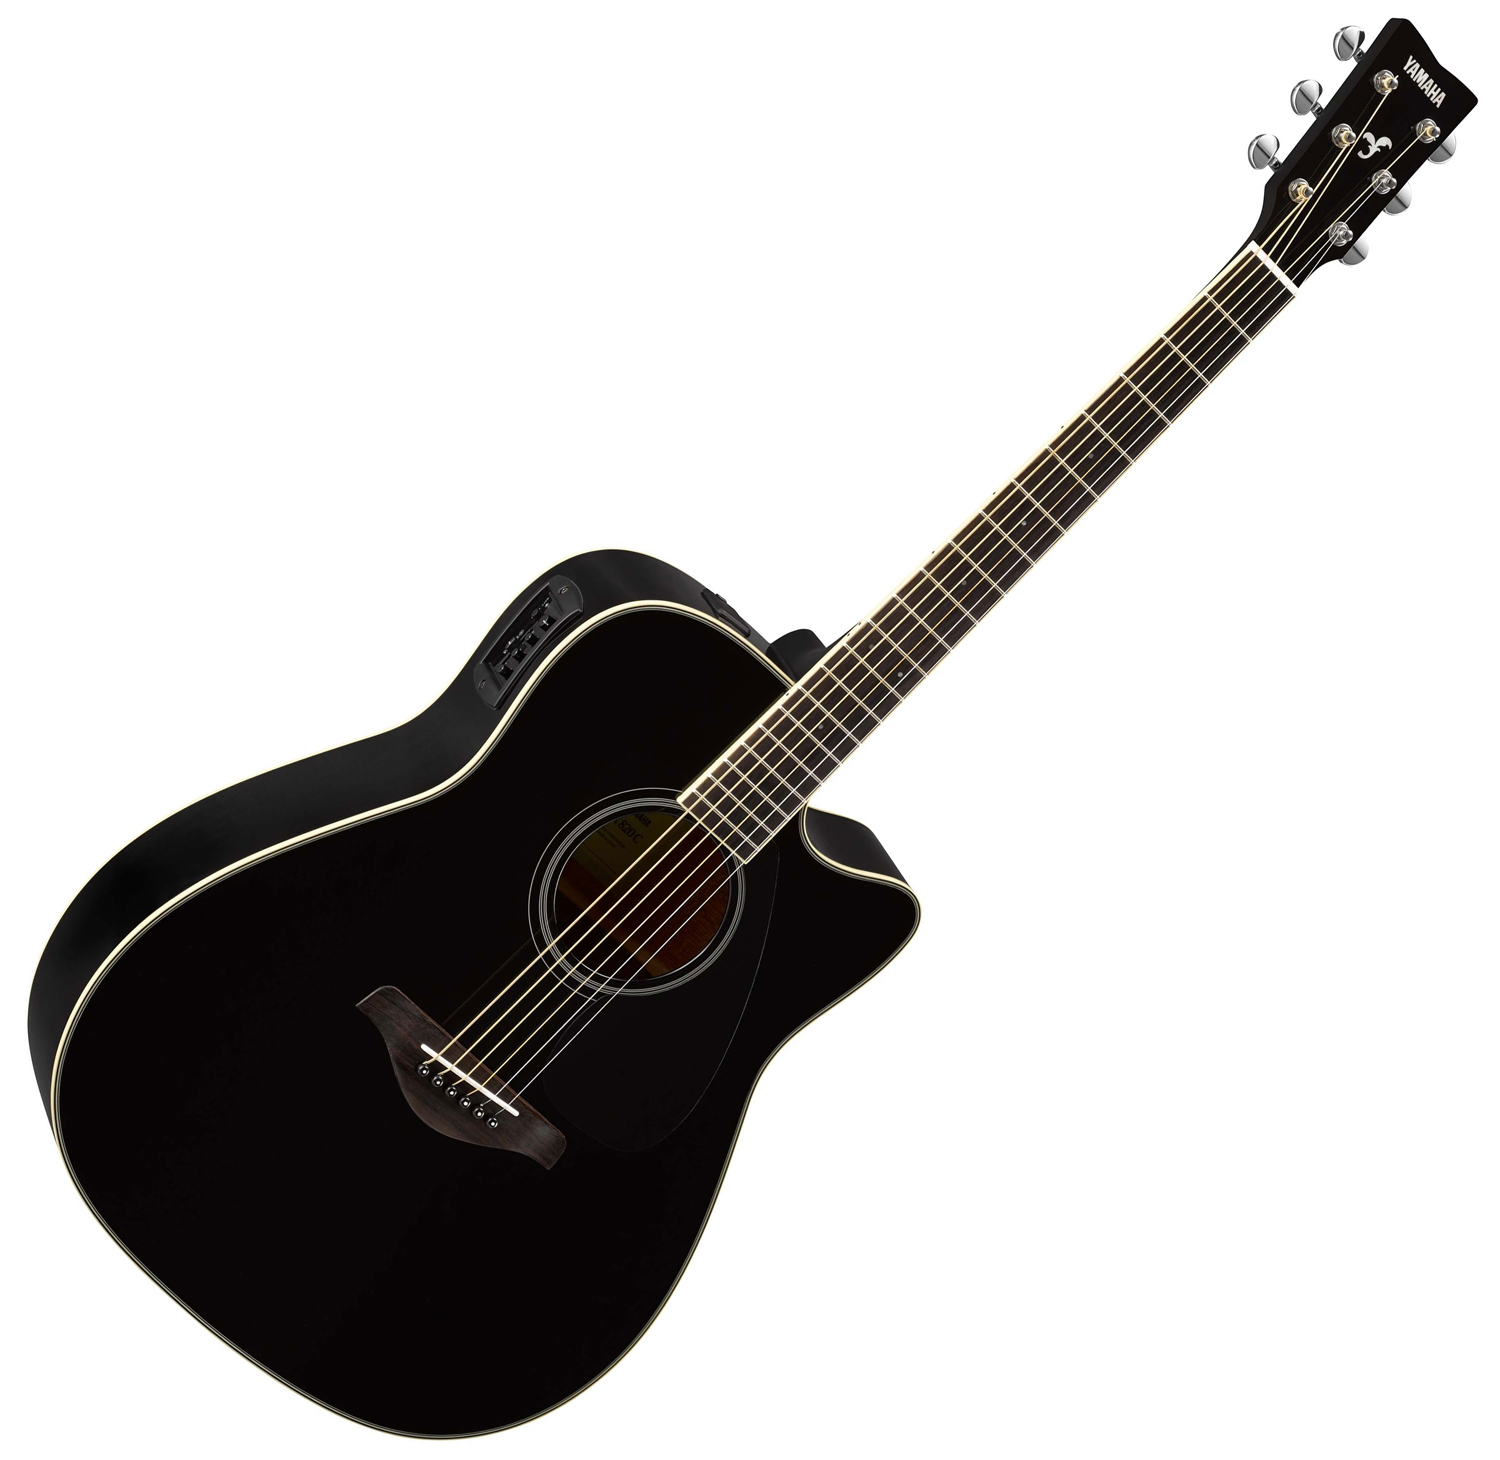 musicworks guitars acoustic electric guitars acoustic electric guitar yamaha fgx solid. Black Bedroom Furniture Sets. Home Design Ideas